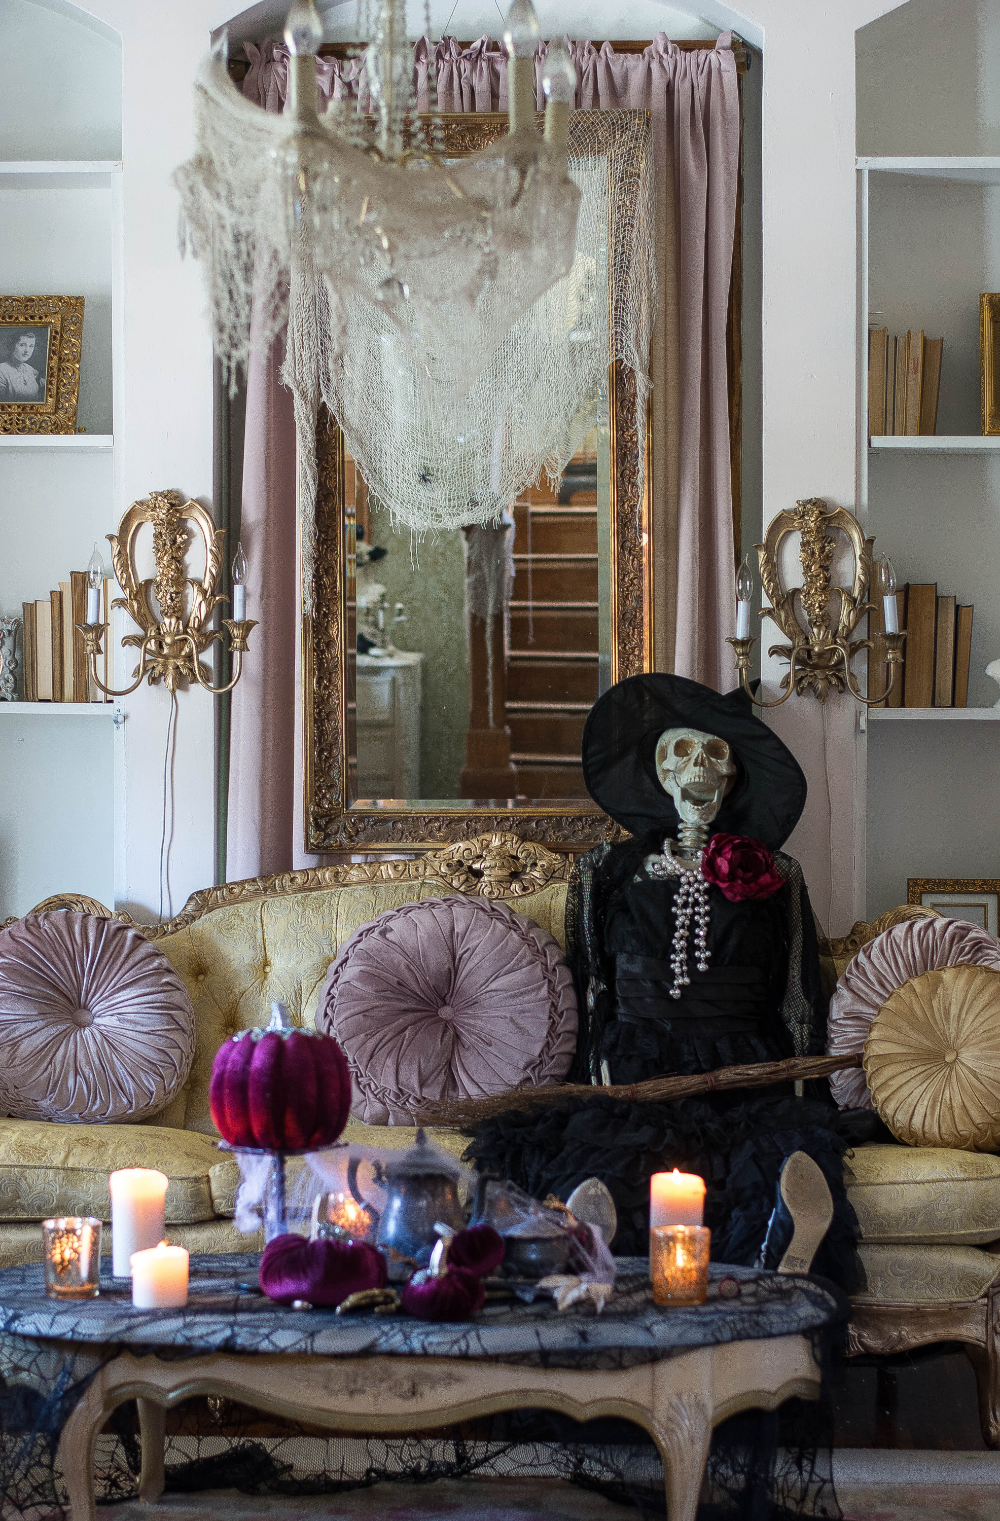 Historic Welch House Halloween Home Tour 2018 in 2020